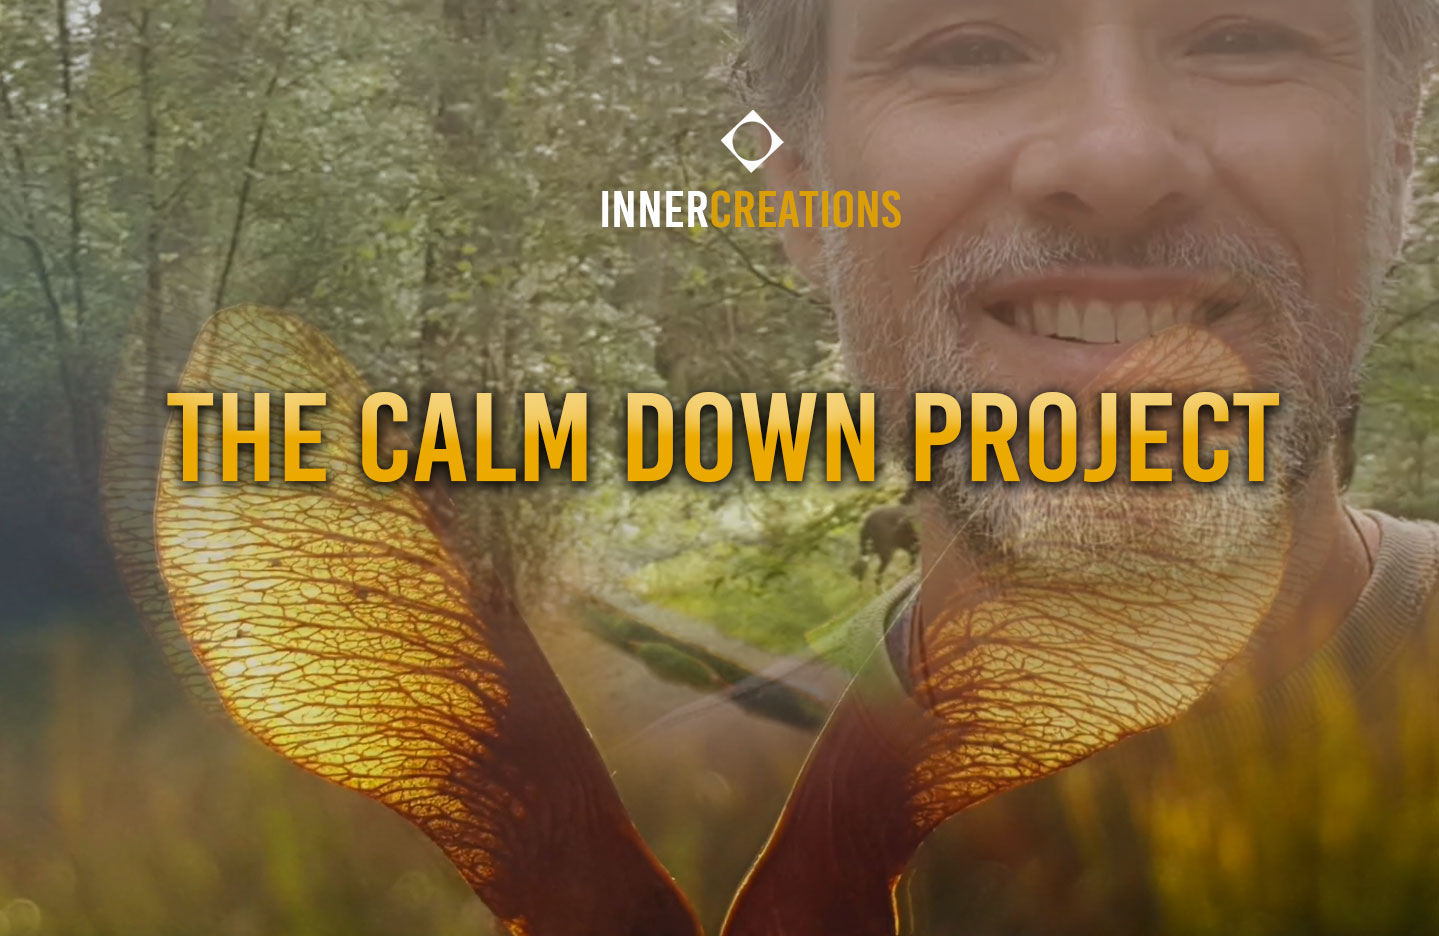 The Calm Down Project